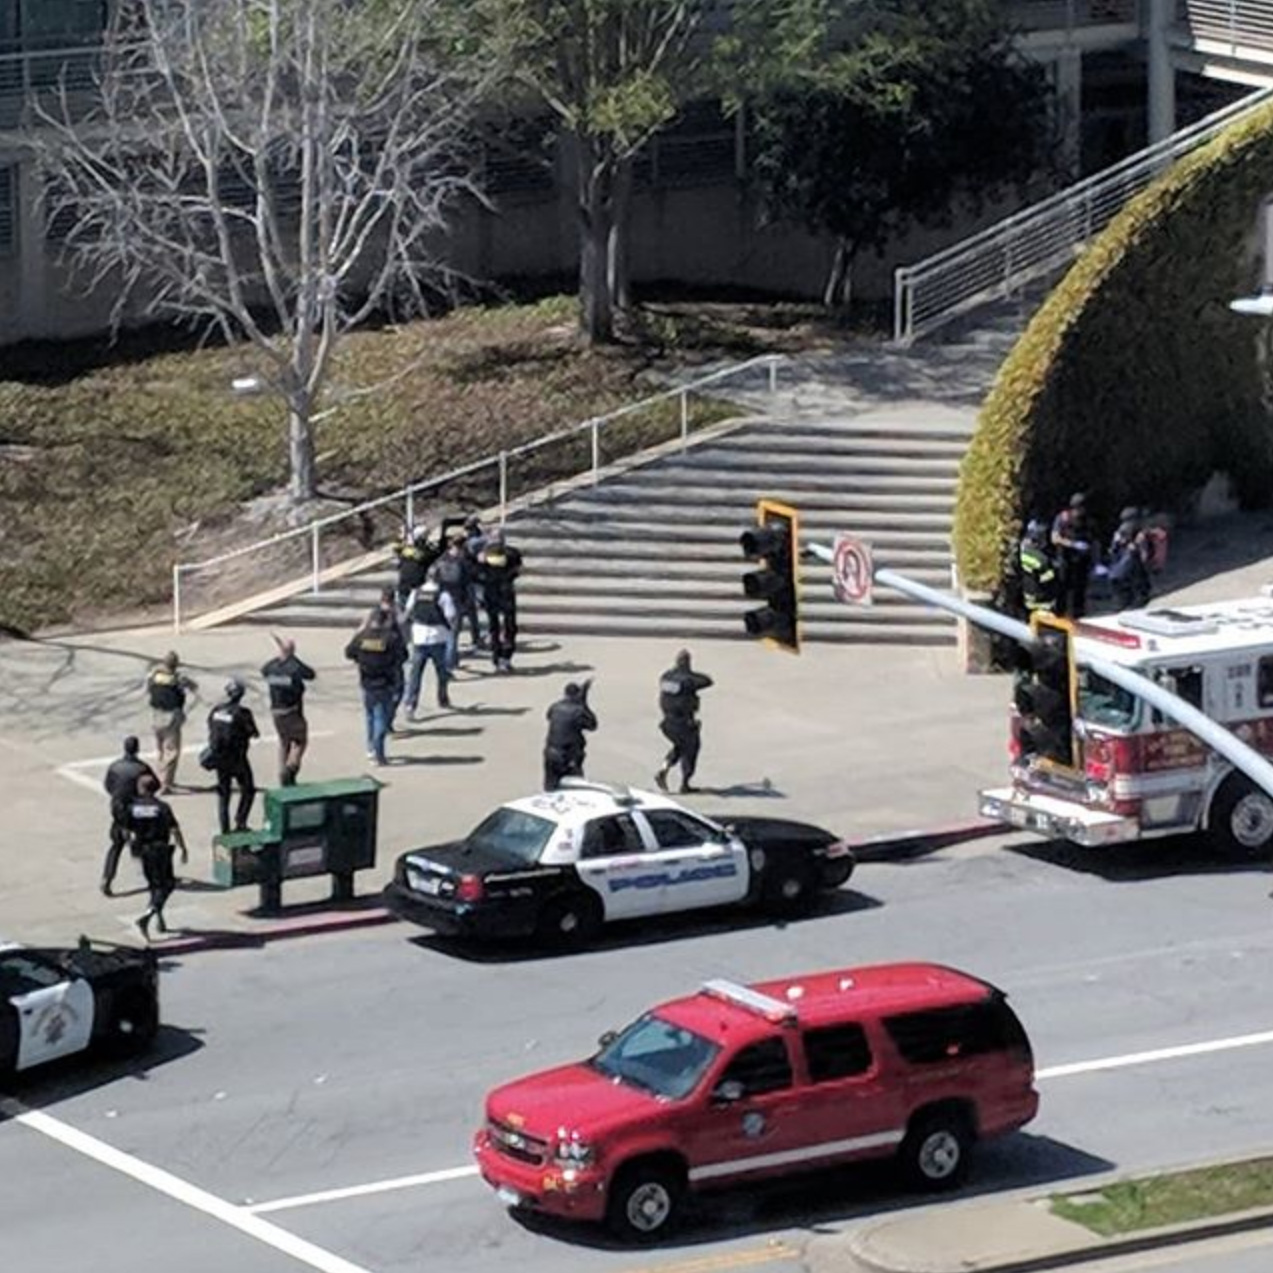 <div class='meta'><div class='origin-logo' data-origin='none'></div><span class='caption-text' data-credit='Justin Sullivan/Getty Images'>Police put on tactical gear outside of the YouTube headquarters on April 3, 2018 in San Bruno, California.</span></div>